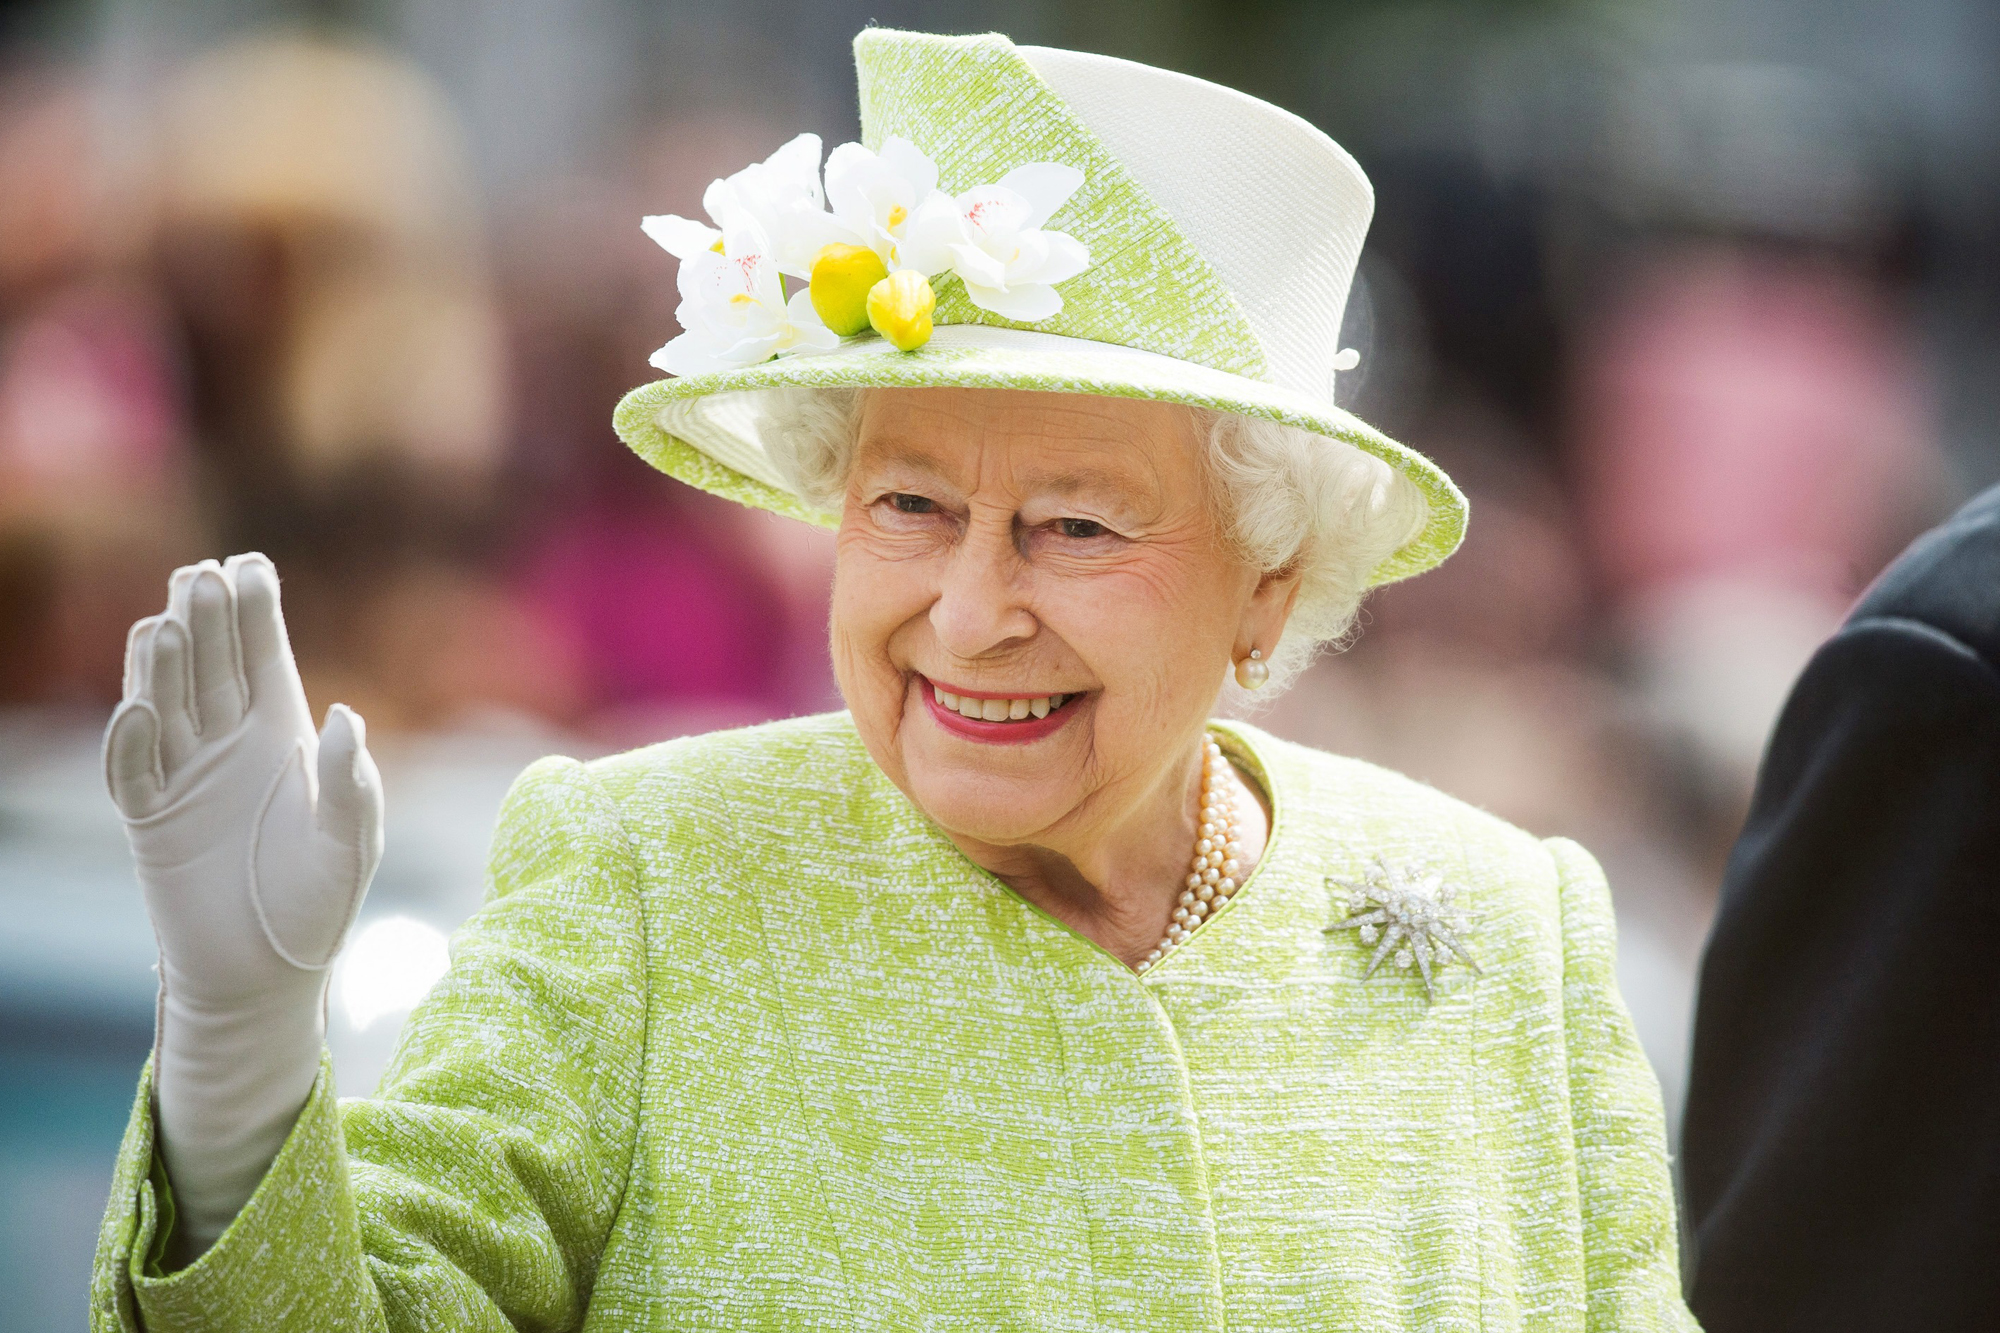 OCT. 23: QUEEN ELIZABETH WELCOMES DUTCH ROYALS